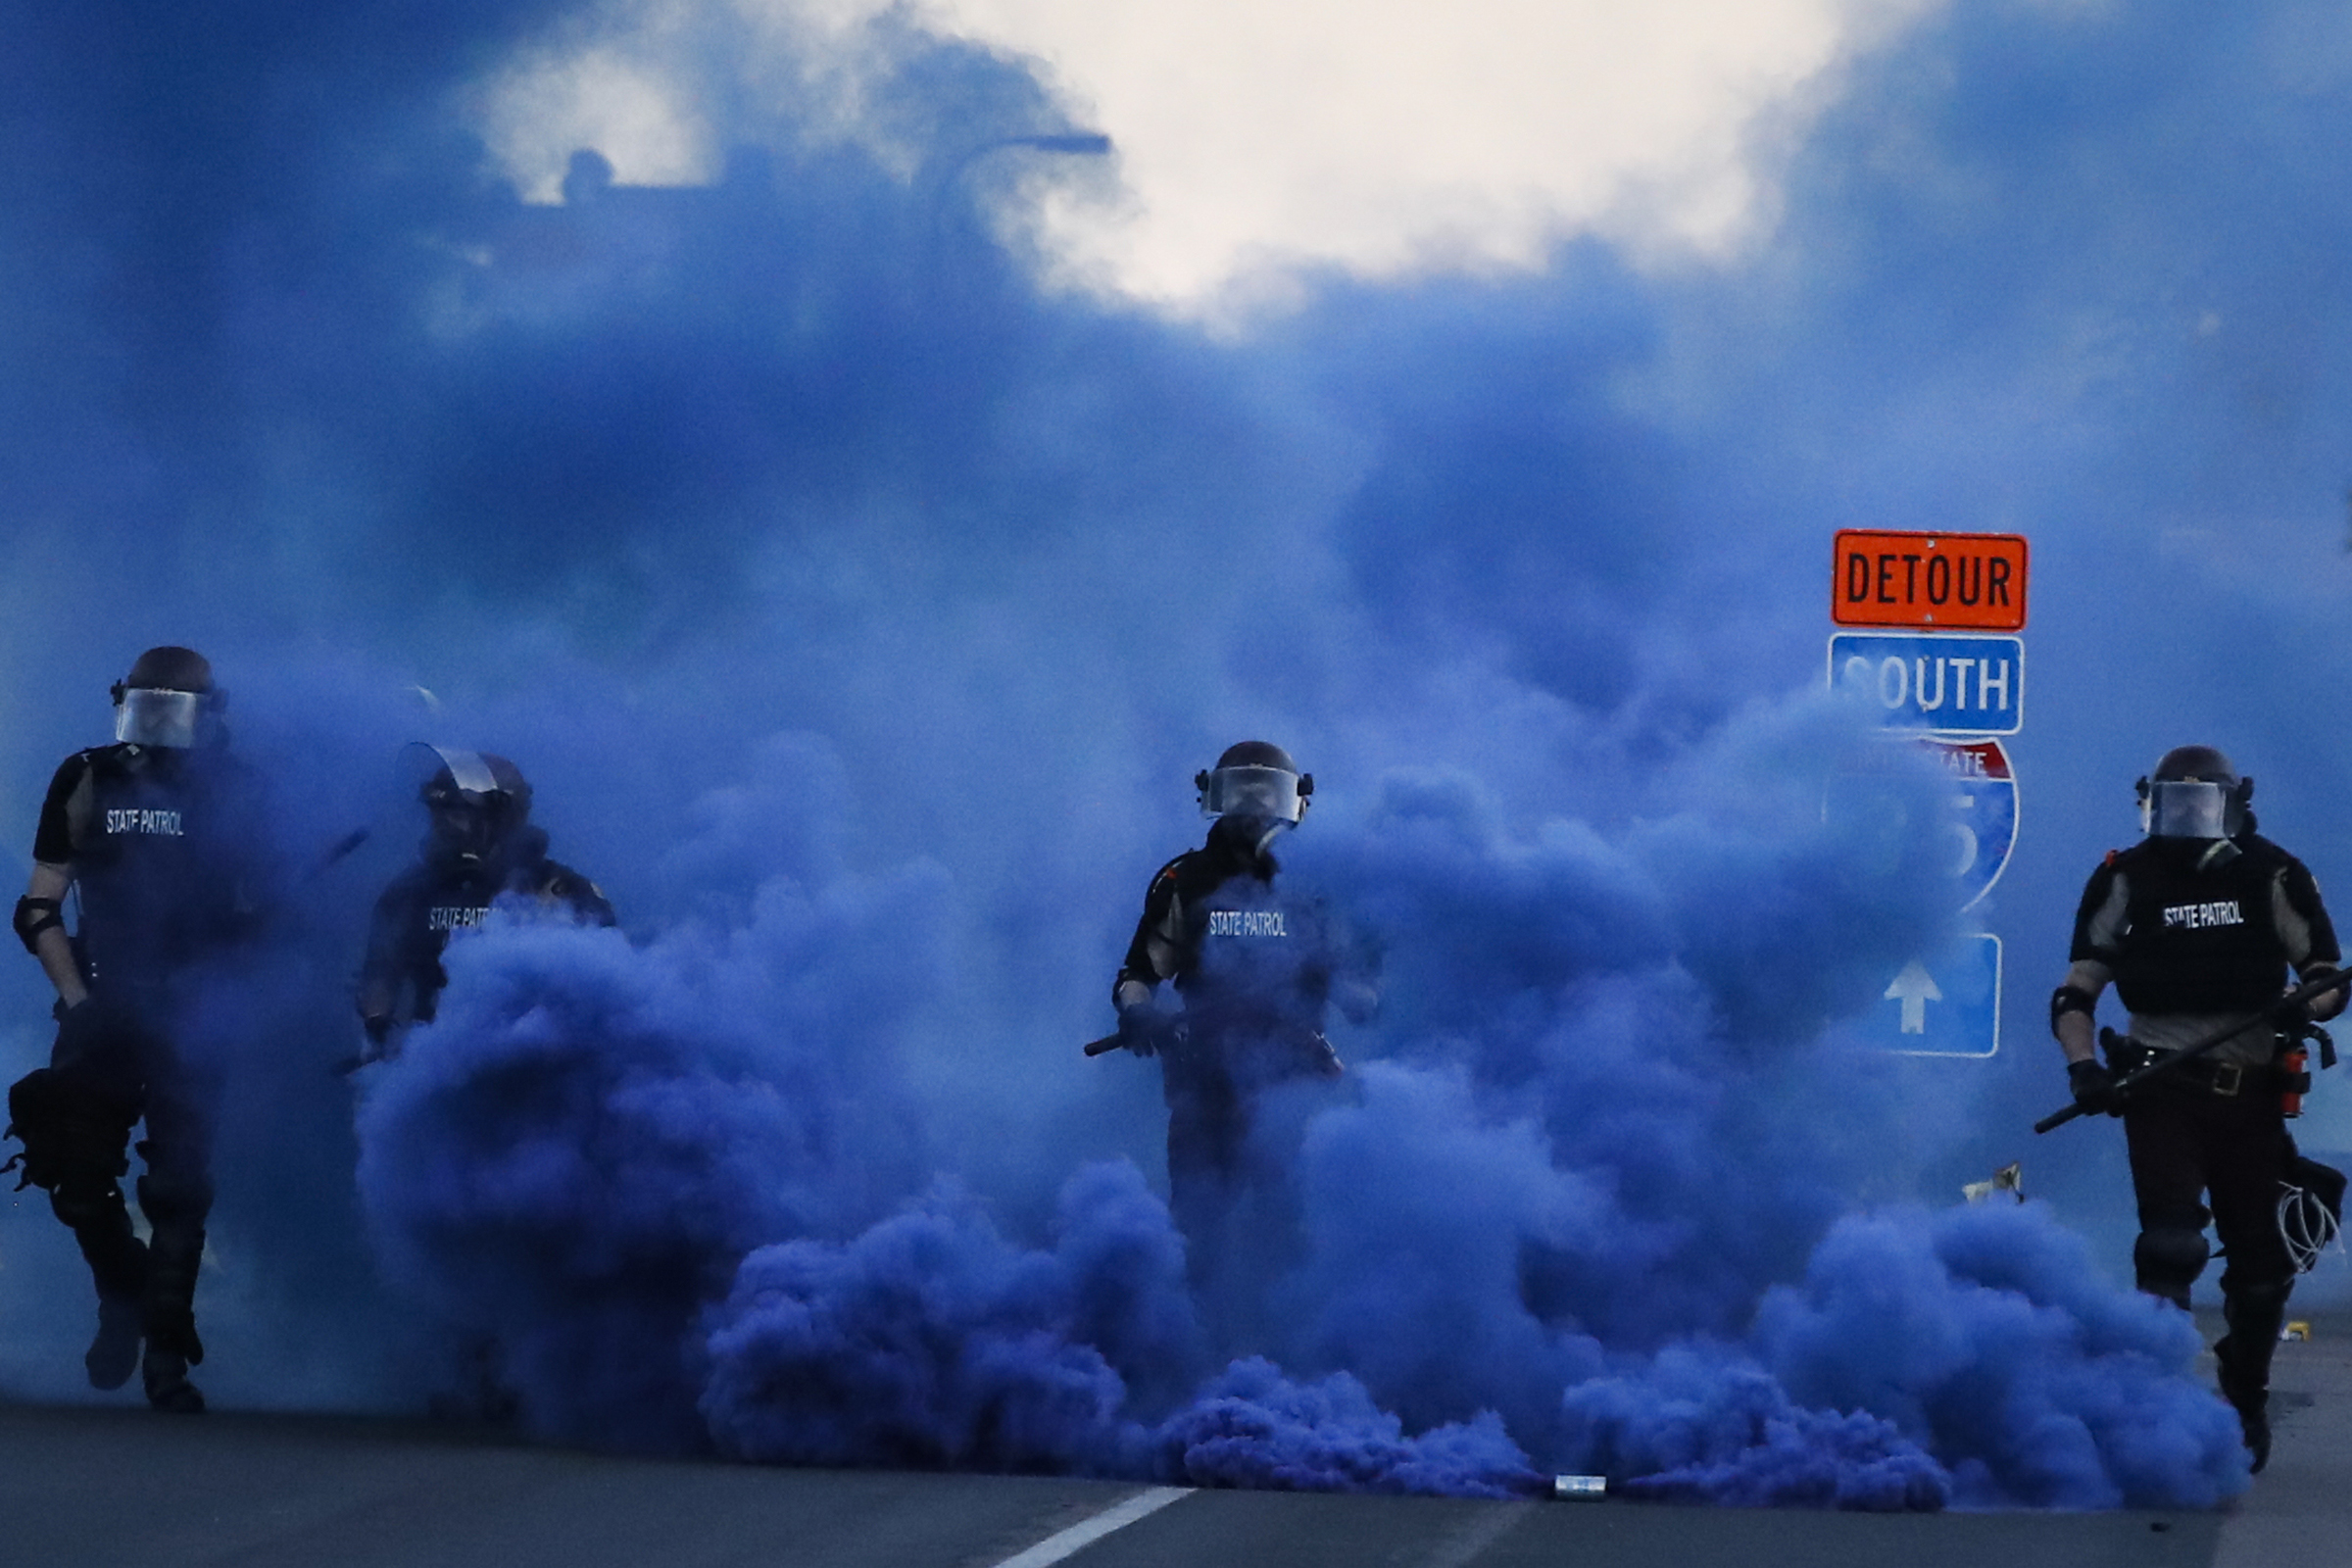 Police in riot gear walk through a cloud of blue smoke as they advance on protesters near the Minneapolis 5th Precinct, on May 30, 2020.